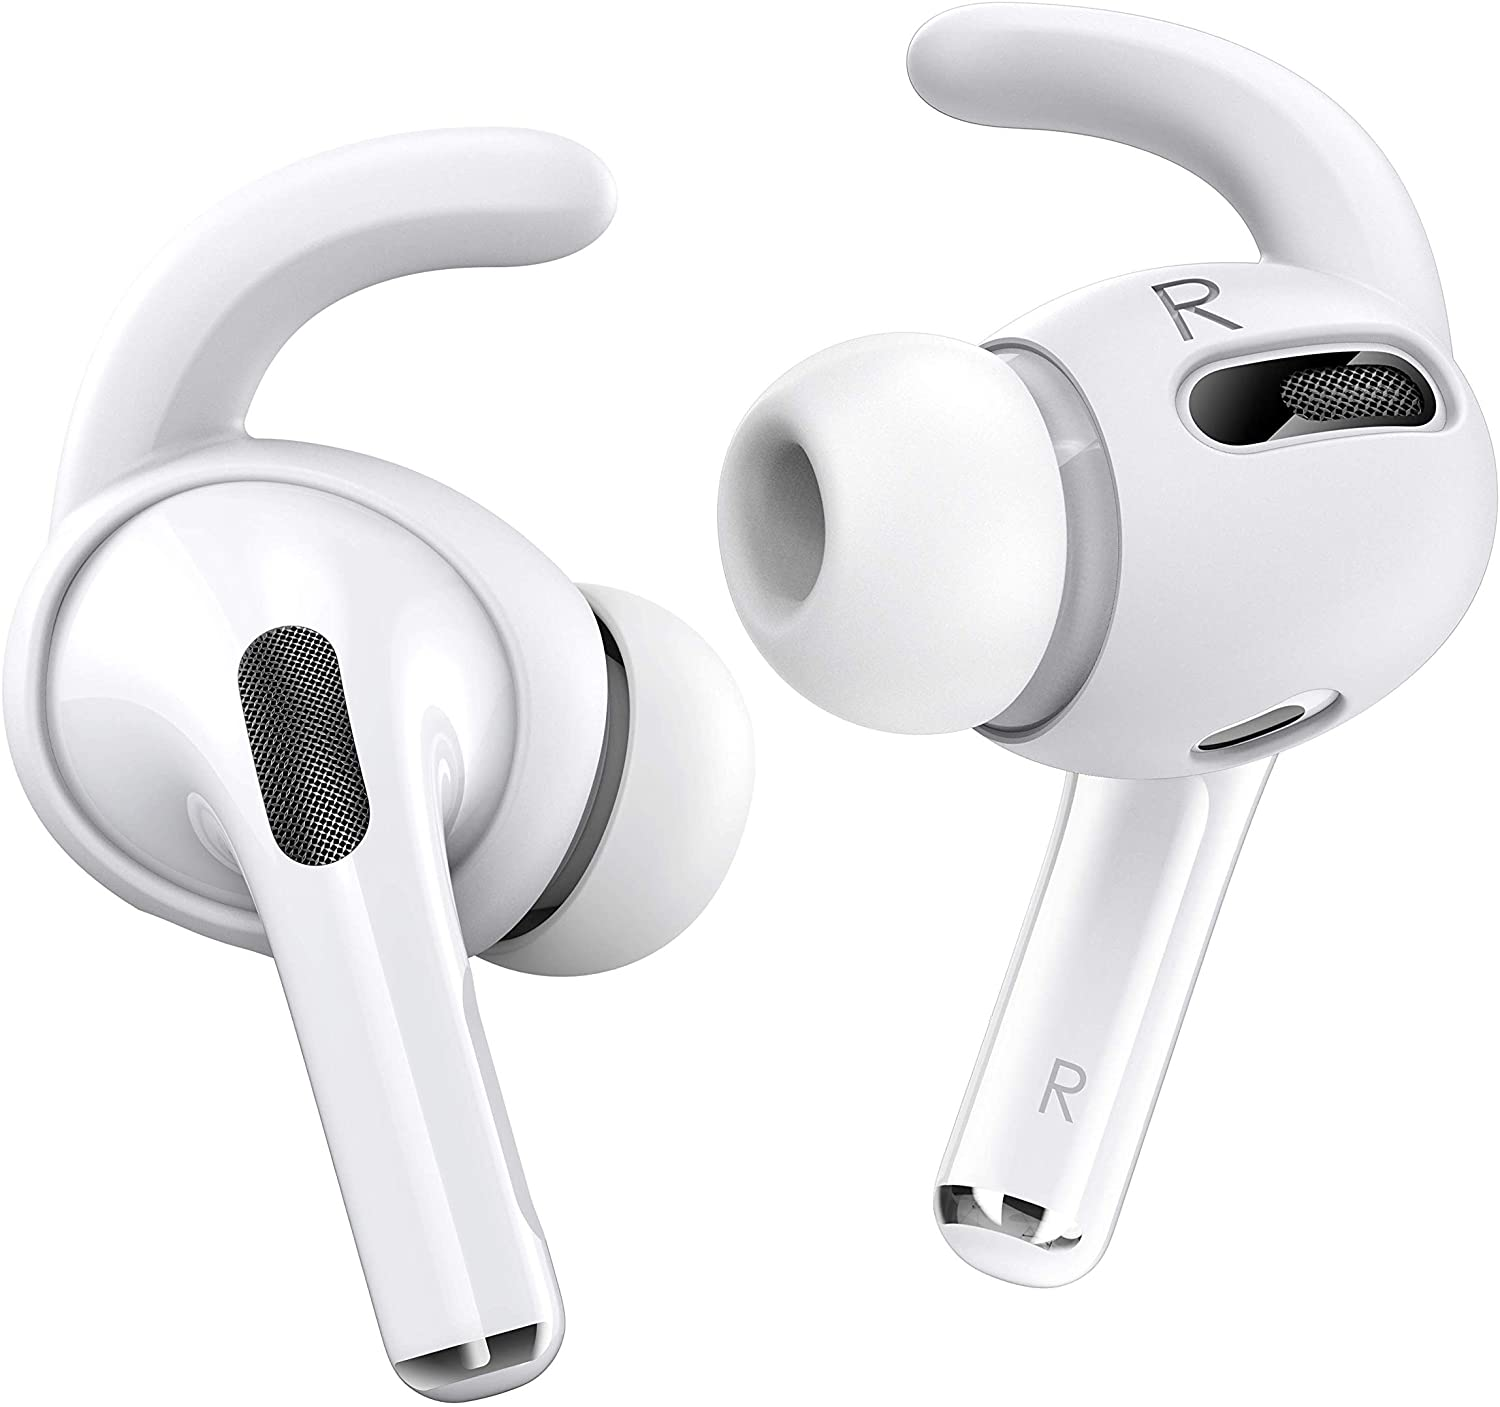 Proof Labs AirPods Pro Ear Hooks